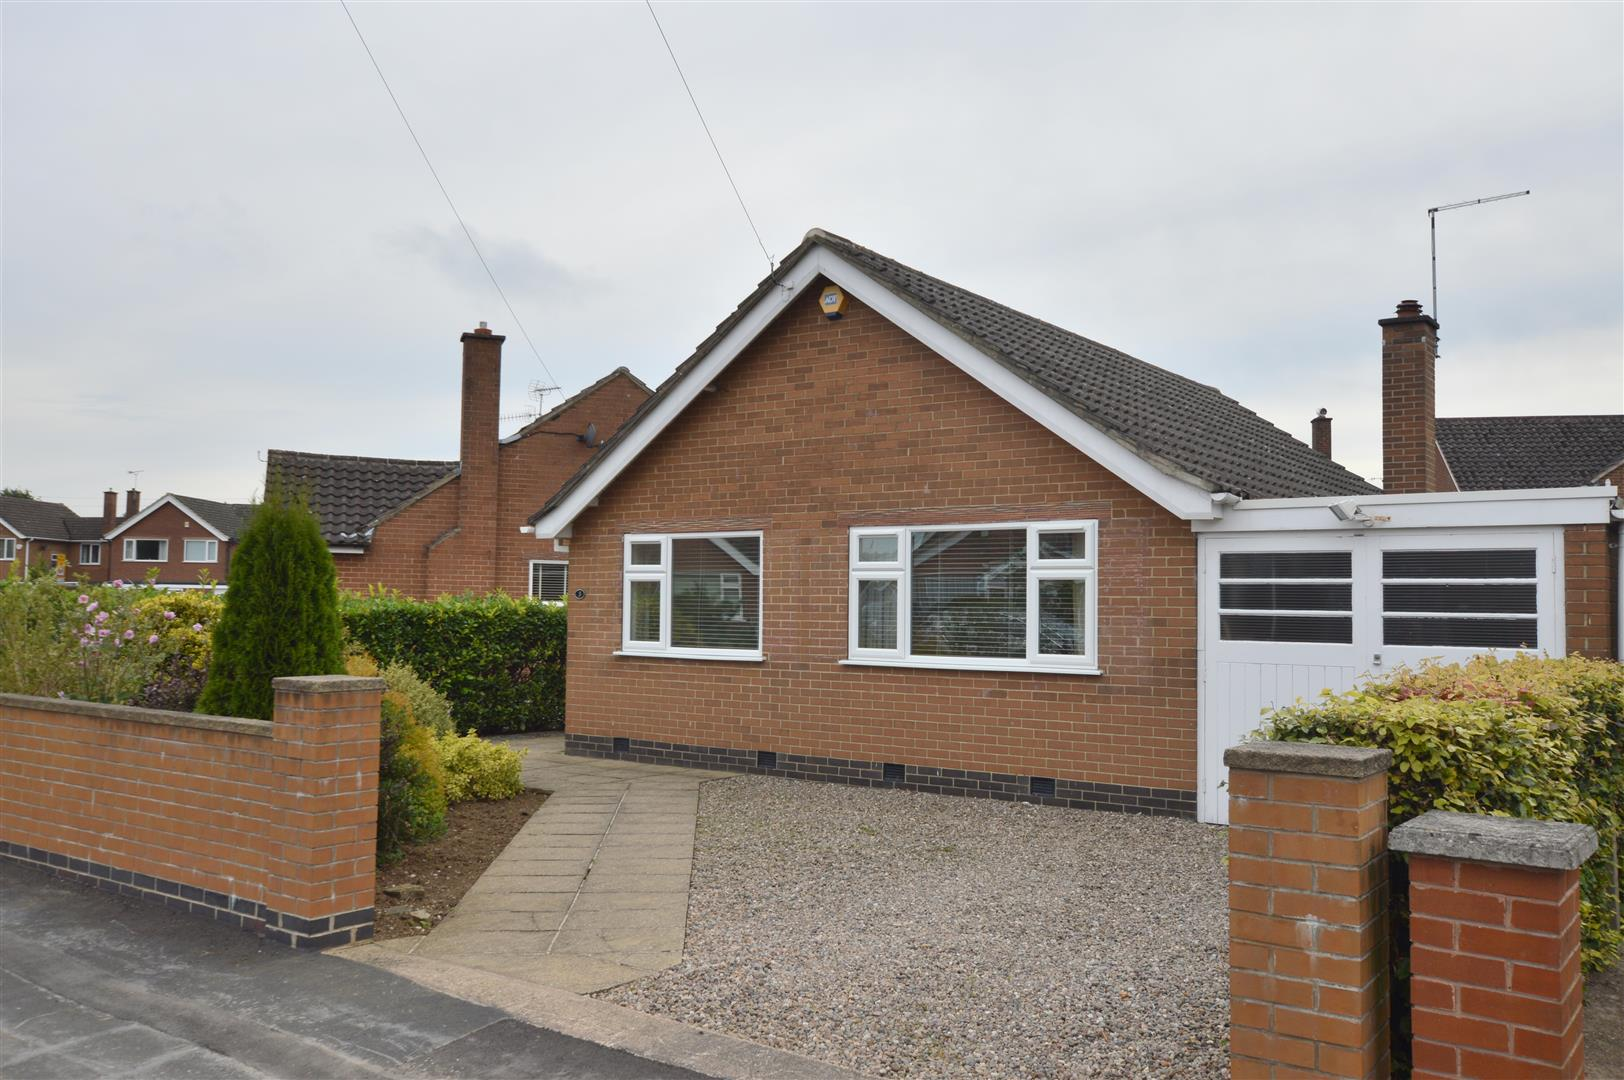 2 Bedroom Detached Bungalow For Sale In Belper